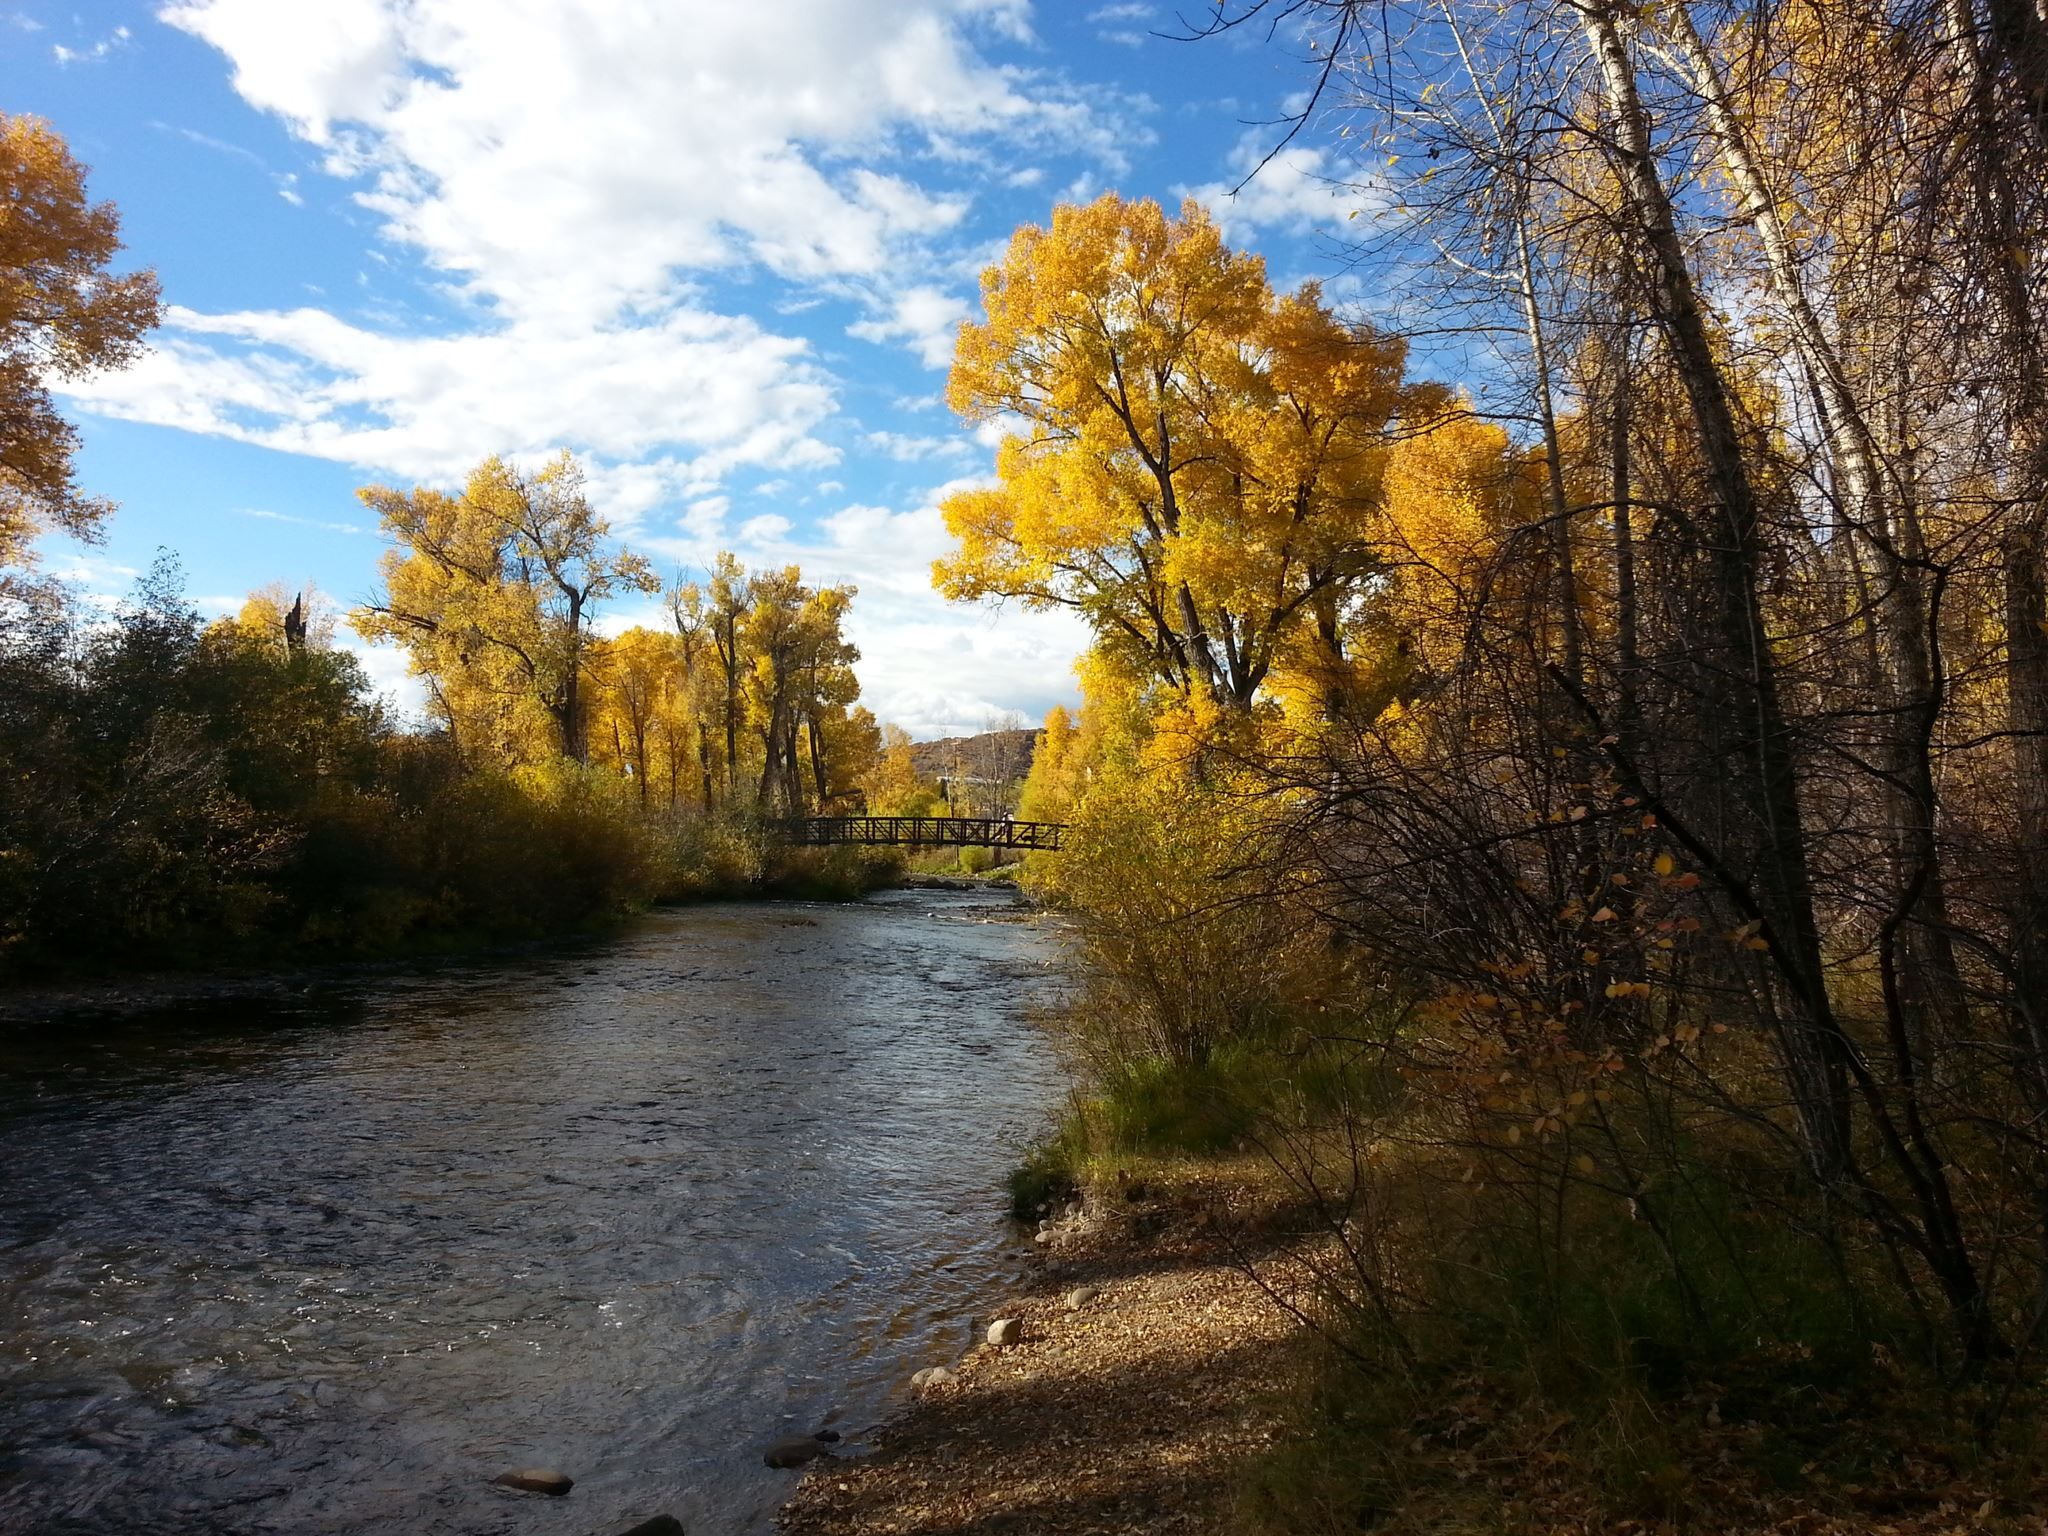 Yampa River with oak trees along the river fall colors